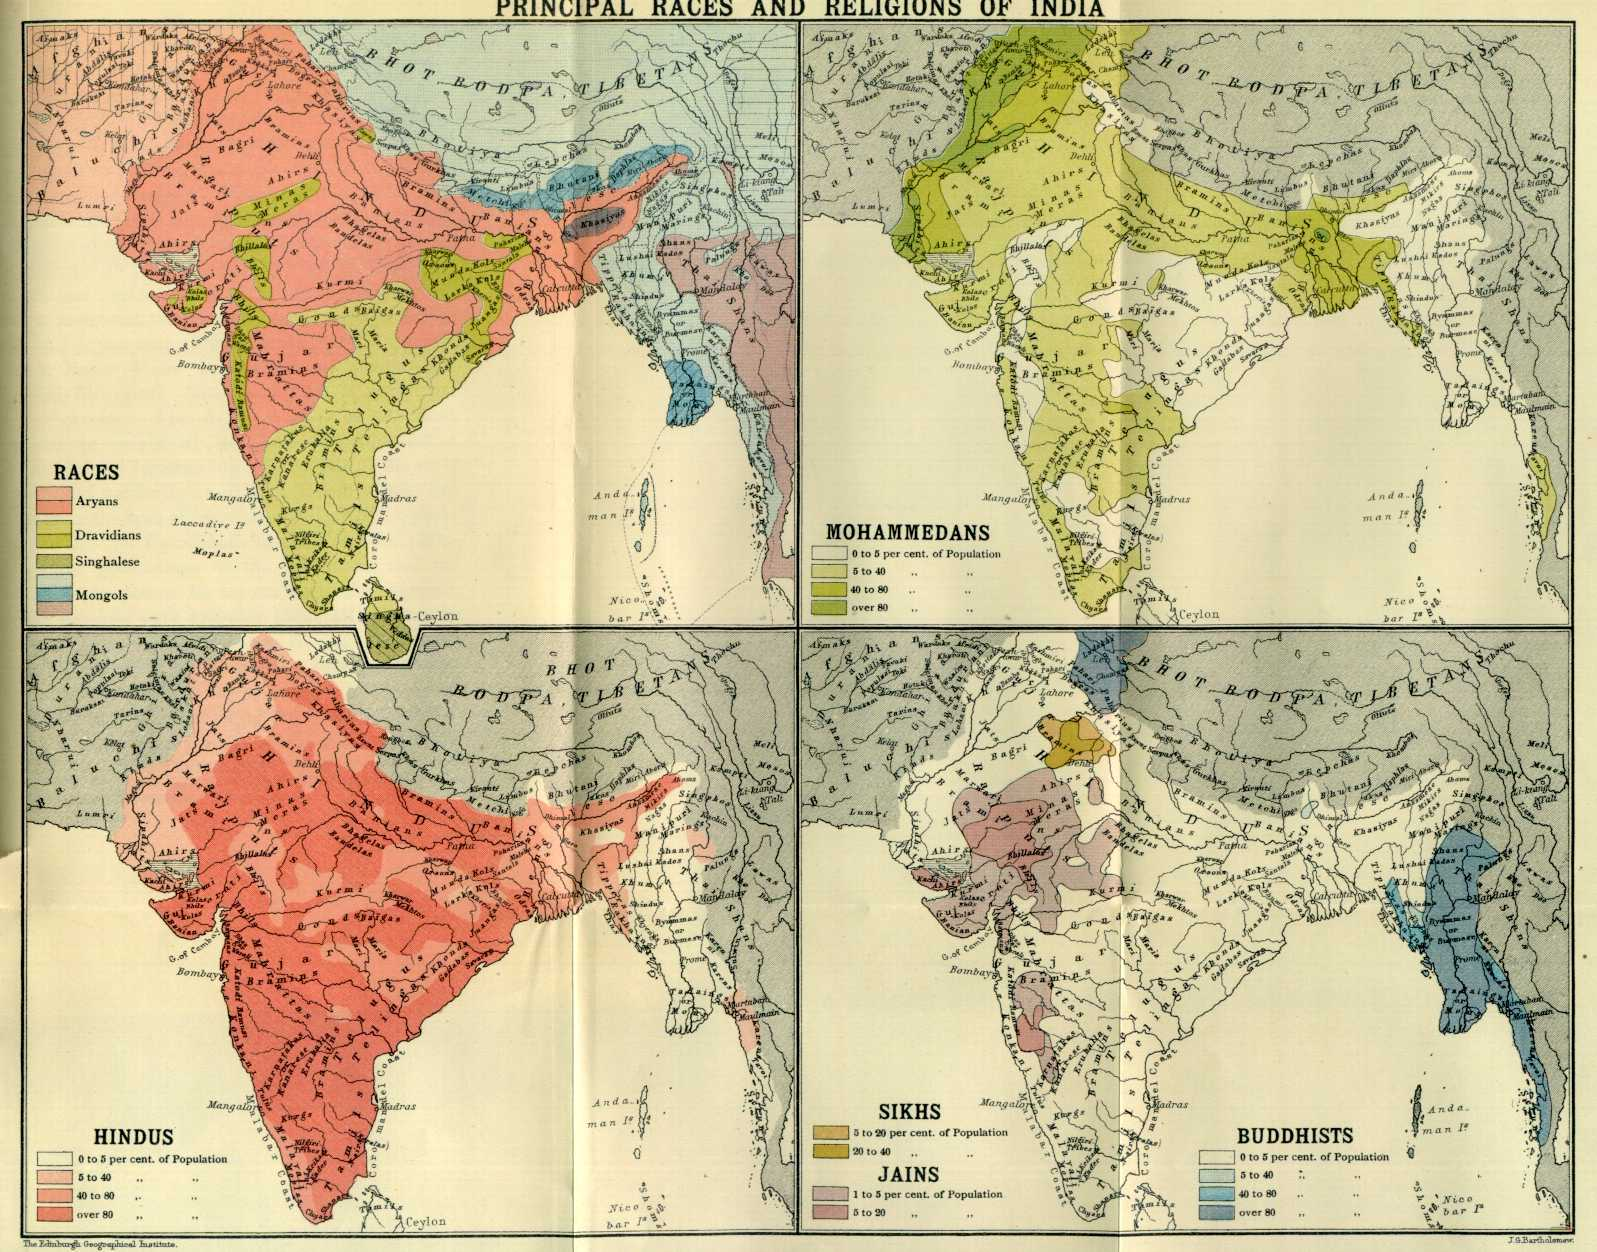 British view of race and religion in their Indian Empire c. 1901.